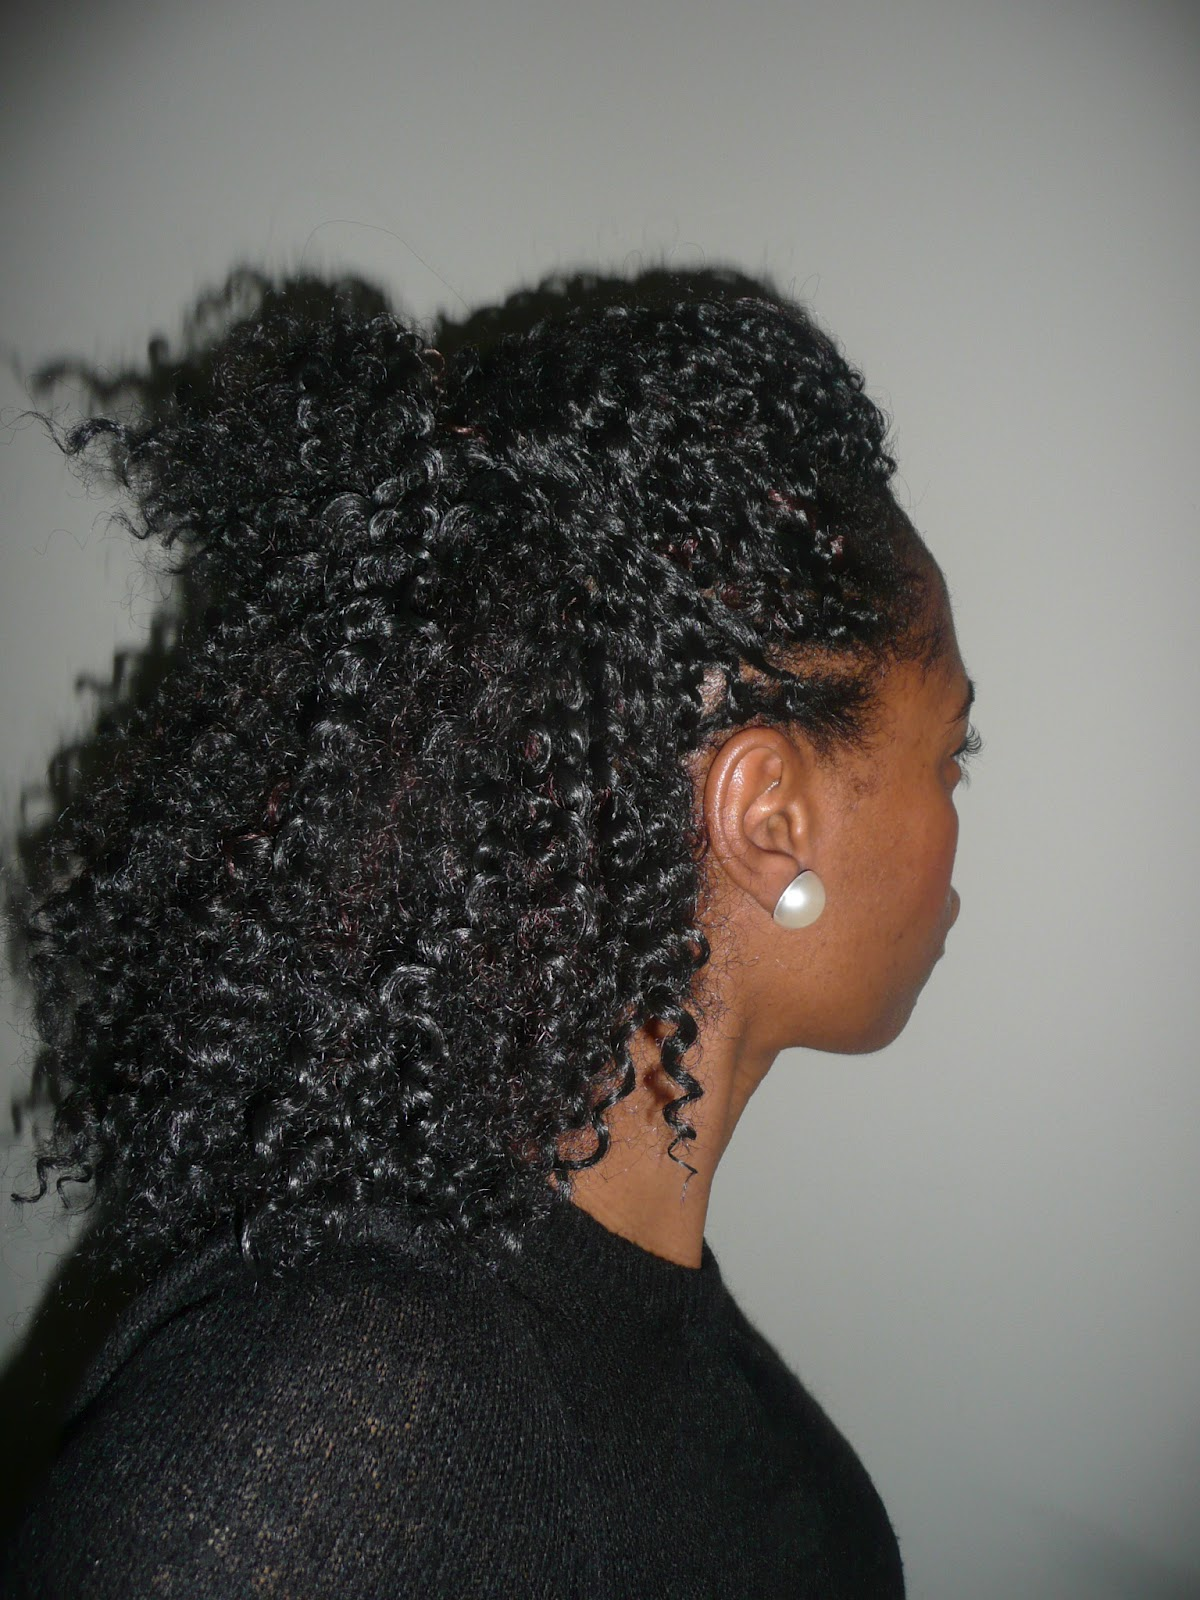 Quickest Crochet Braids : My HAIR Today: Crochet Braid Style #1 Simply Into My HAIR